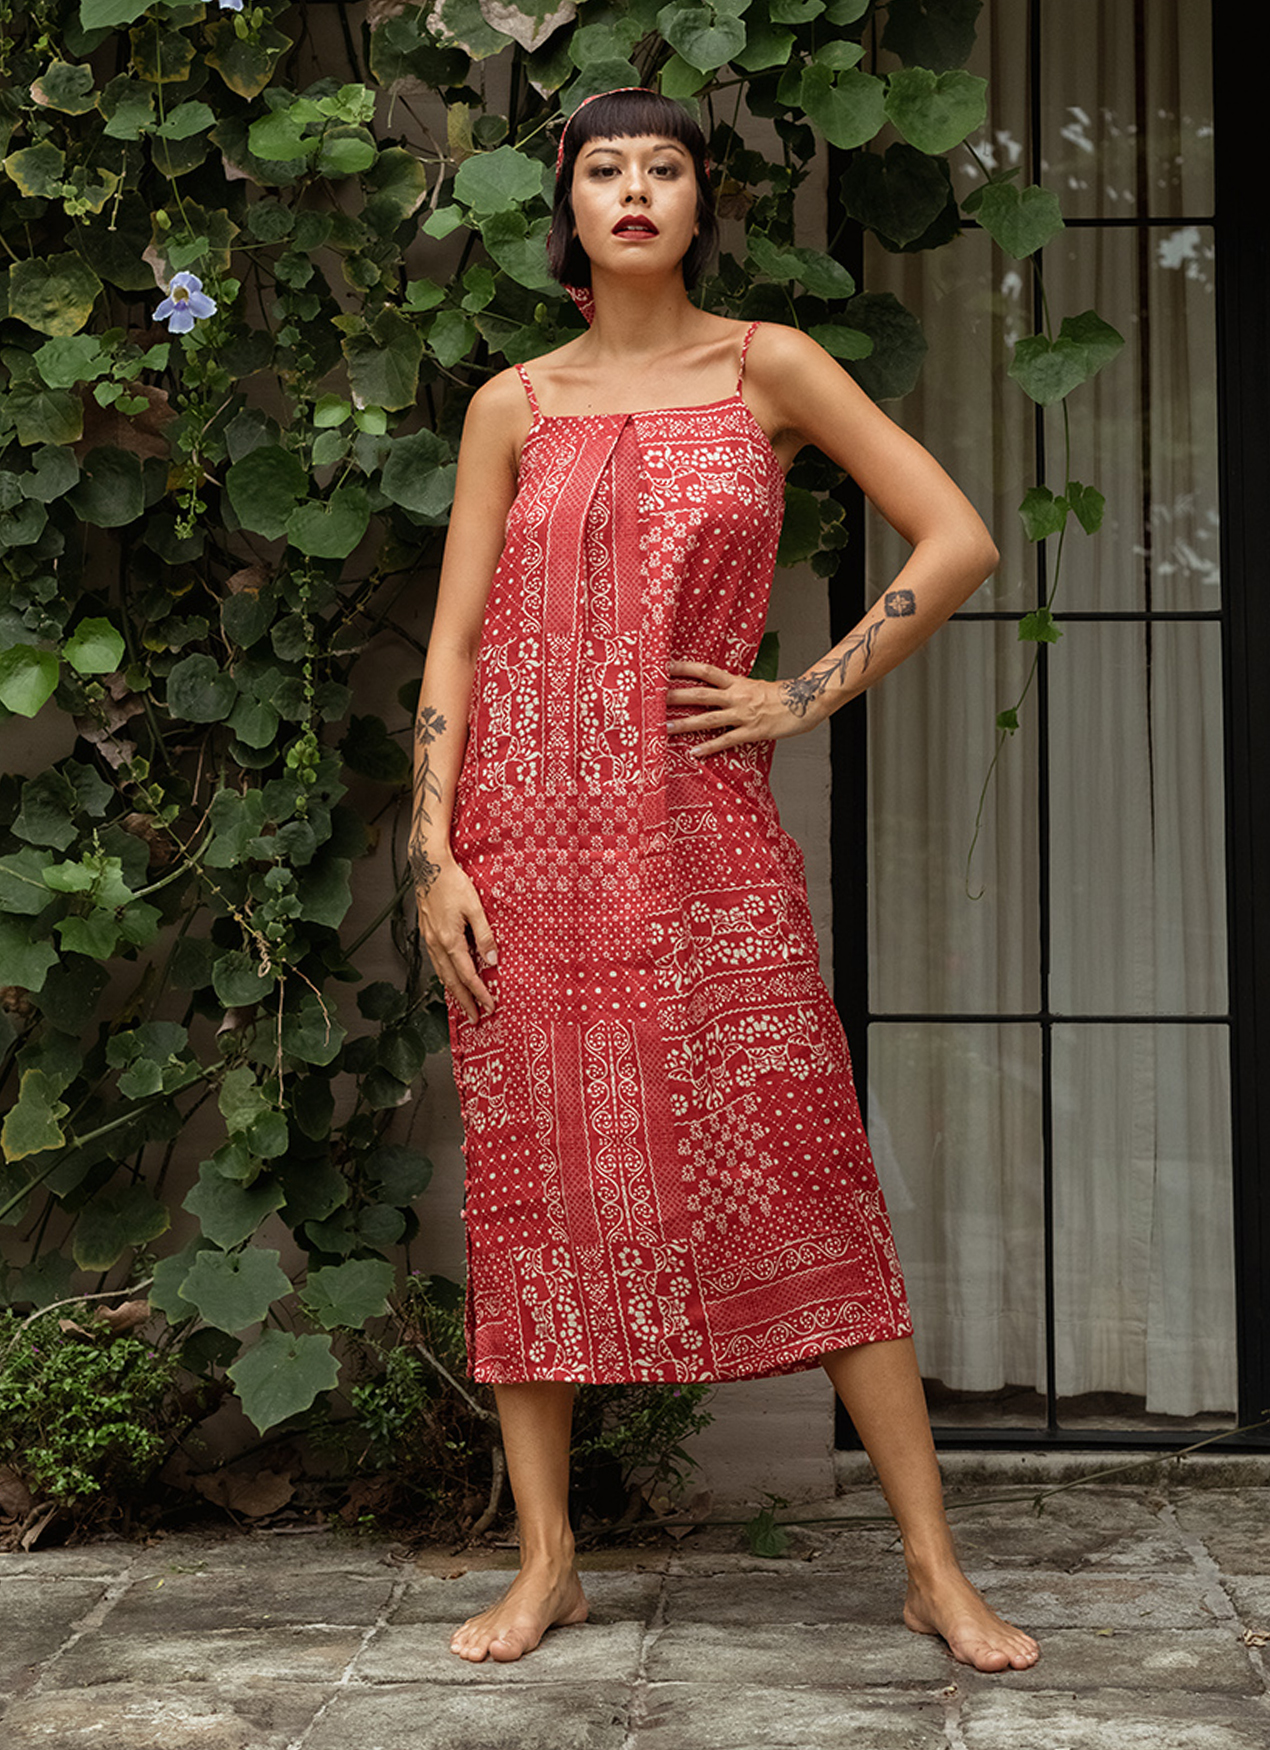 Eesome Sandy Dress Set Red